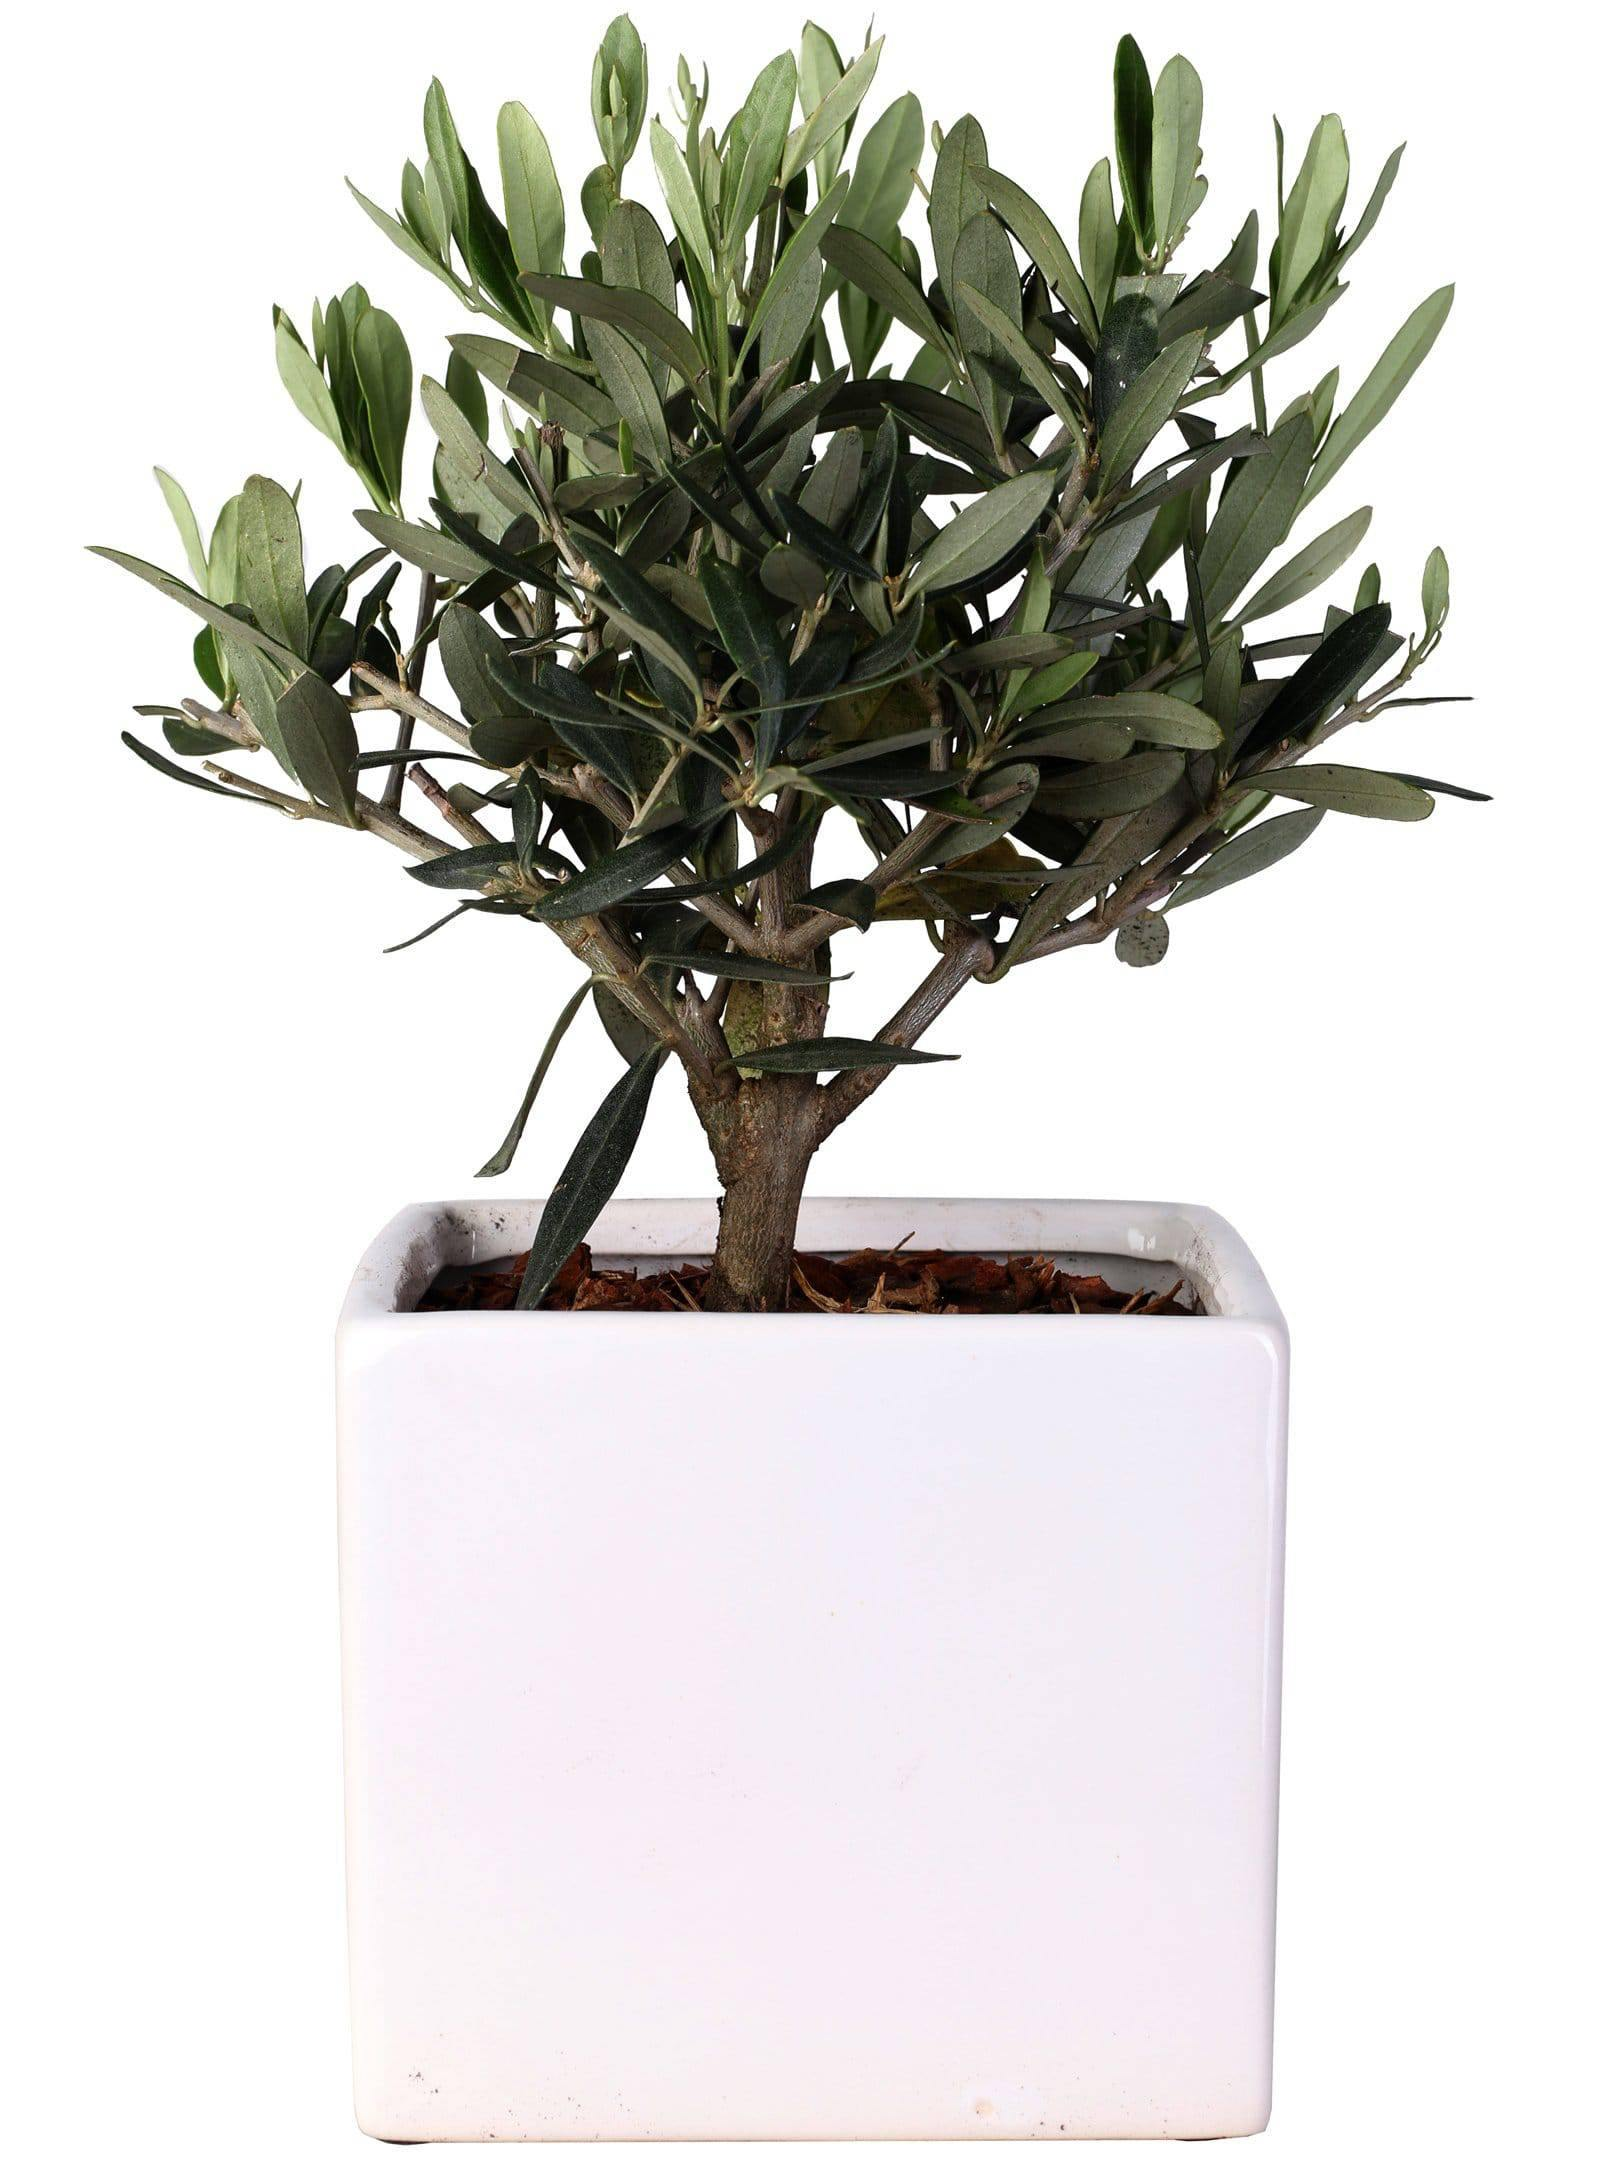 Olive Tree Mini Bonsai In Ceramic Vase Square Diameter 14 Cm - Casita Hermosa